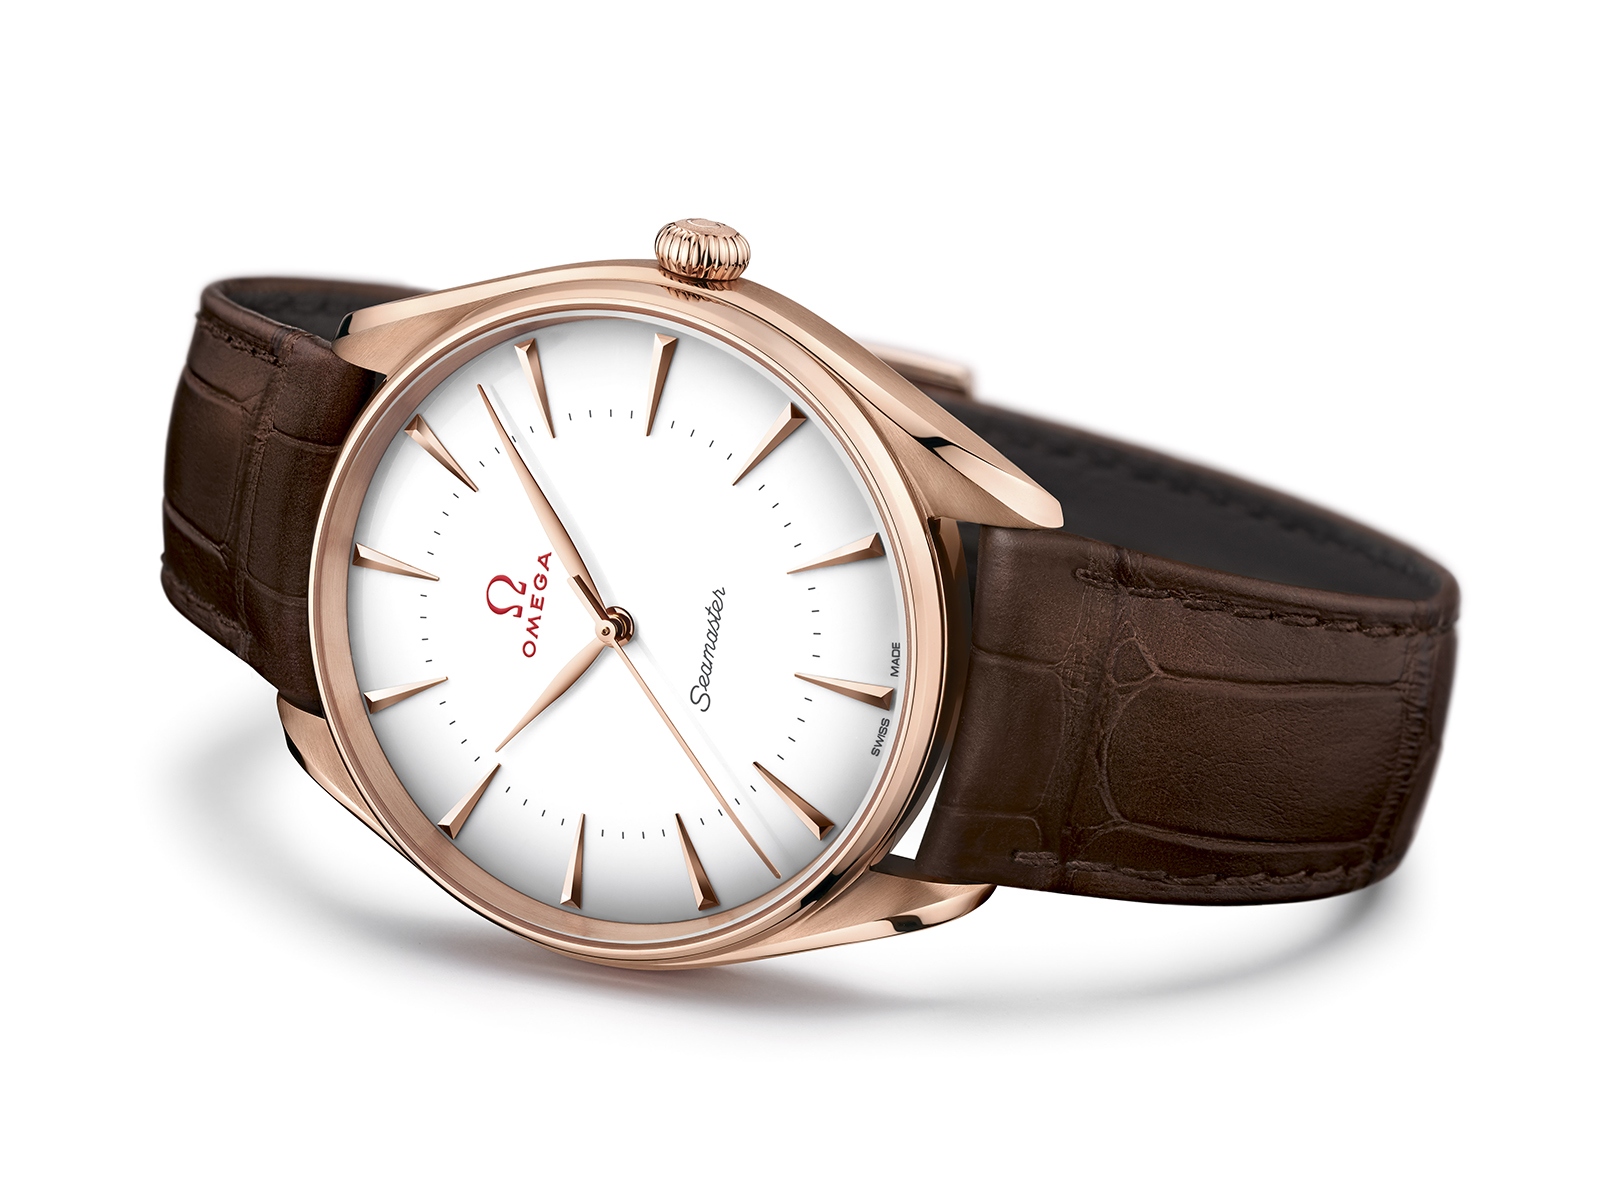 Omega Seamaster Olympic Games Gold Sedna gold